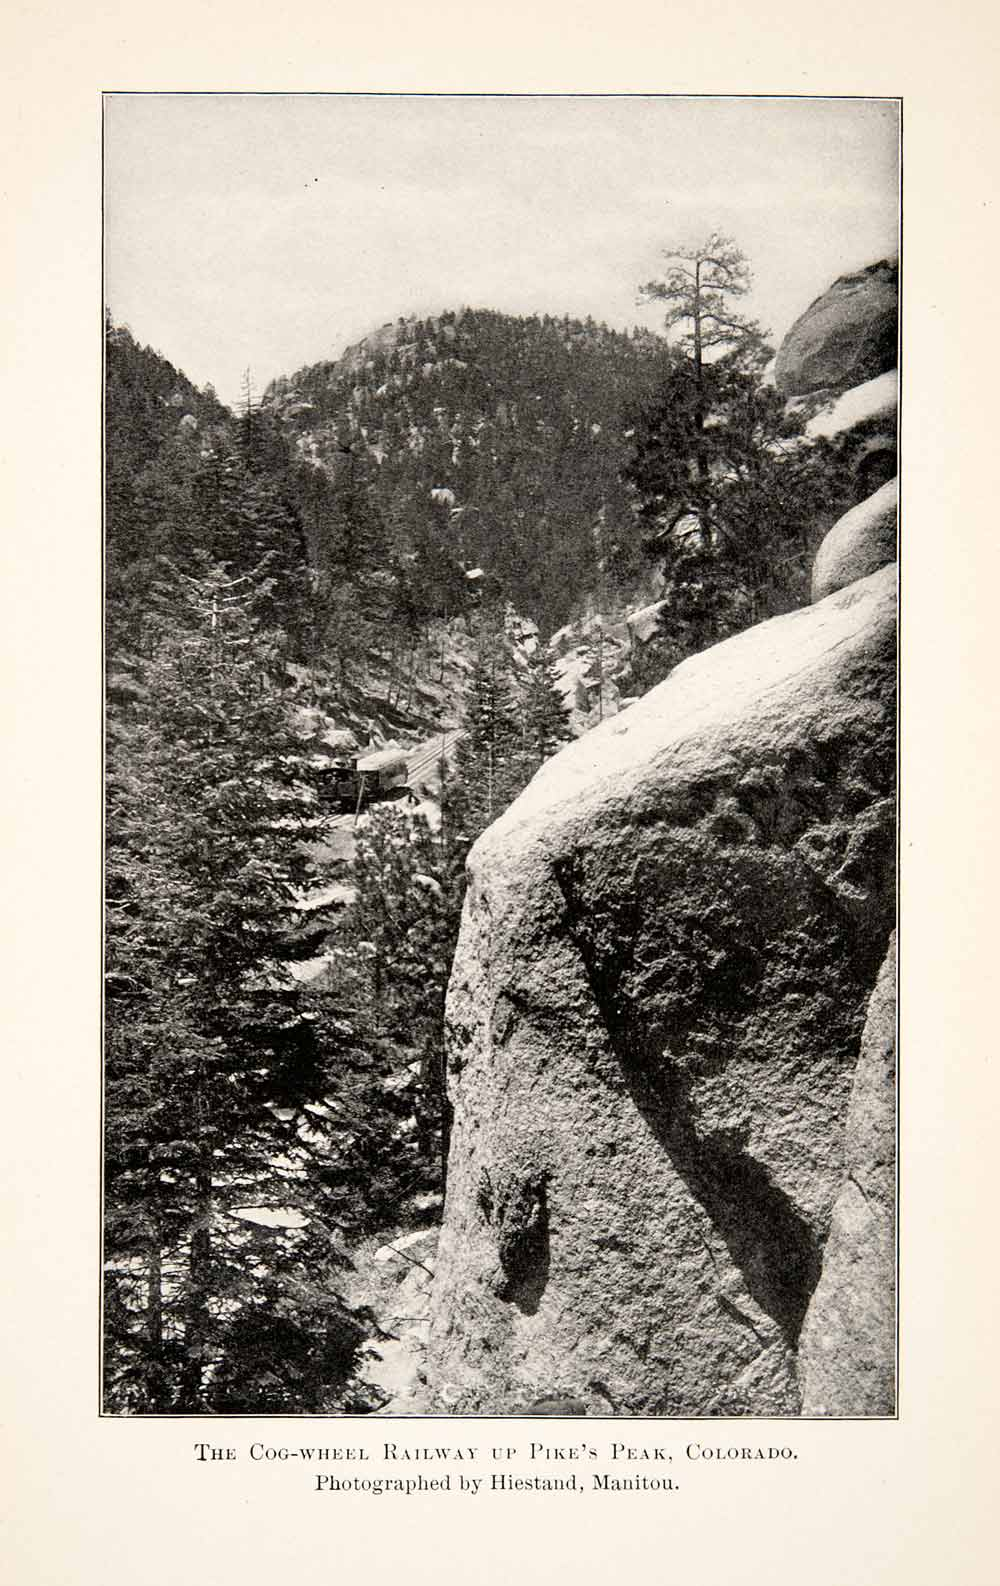 1902 Print Cog-Wheel Railway Pikes Peak Colorado Rocky Mountain Landscape XGWB7